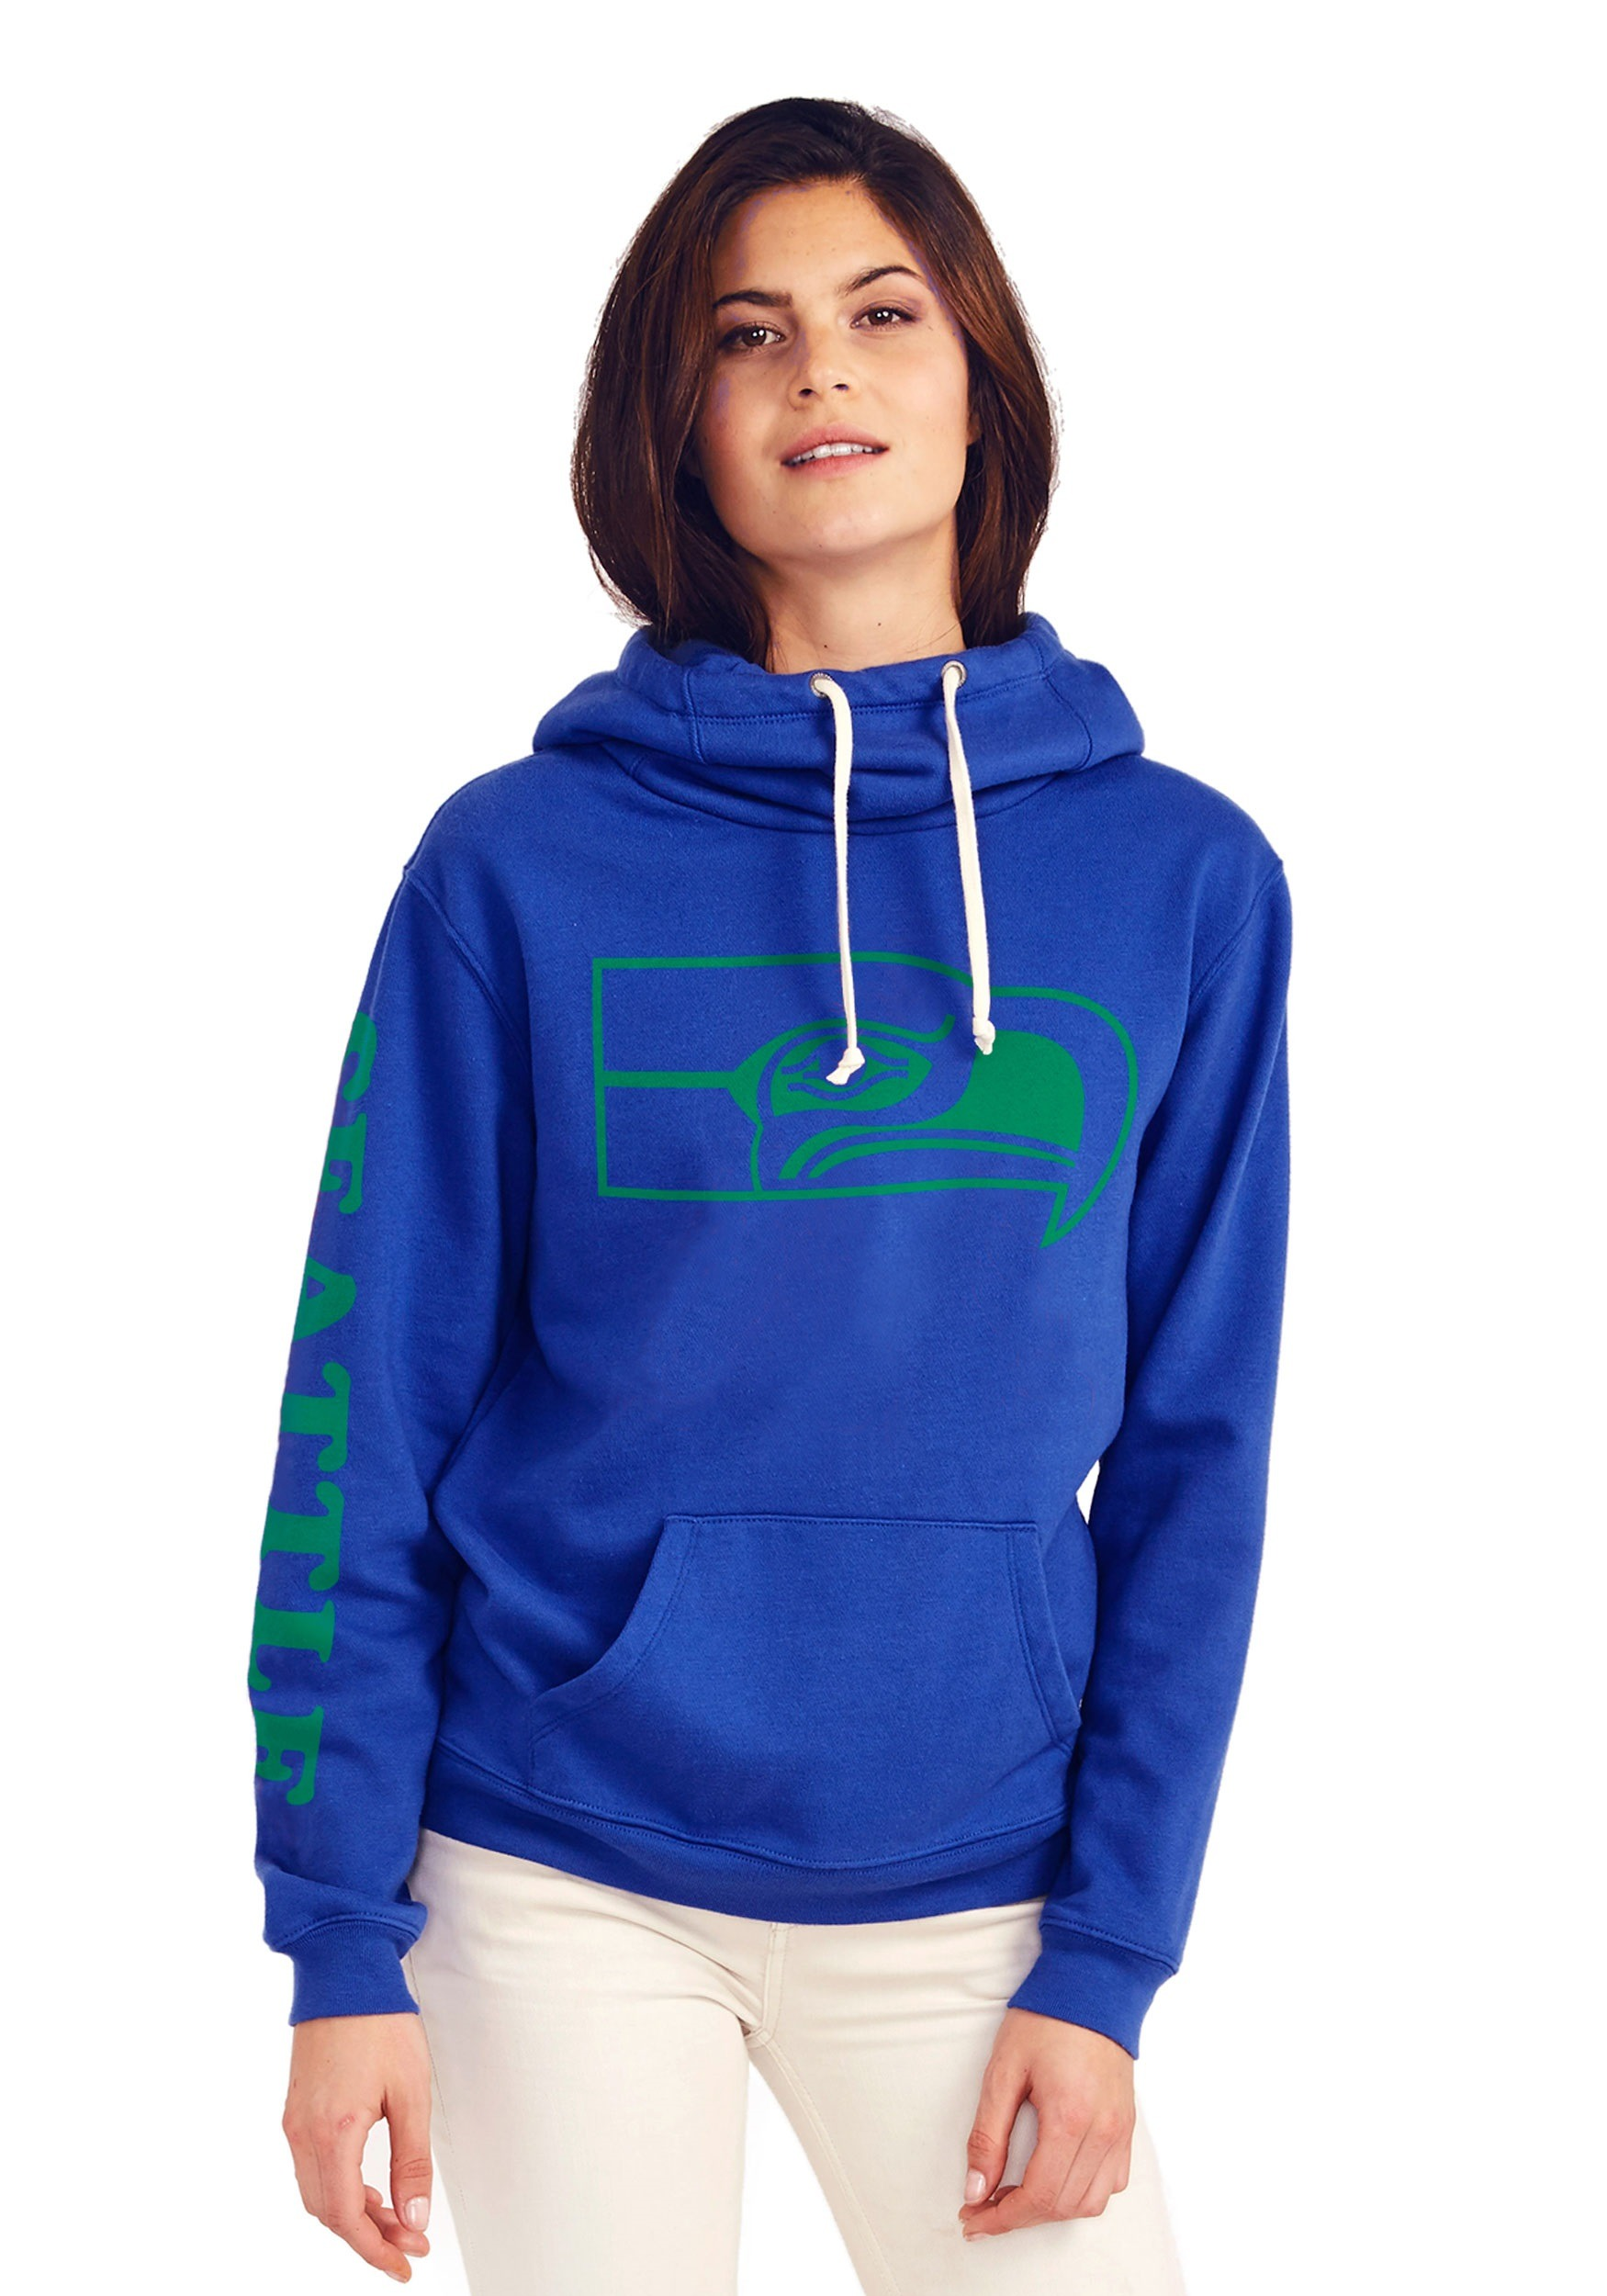 Seattle Seahawks Women's Cowl Neck Hooded Sweatshirt